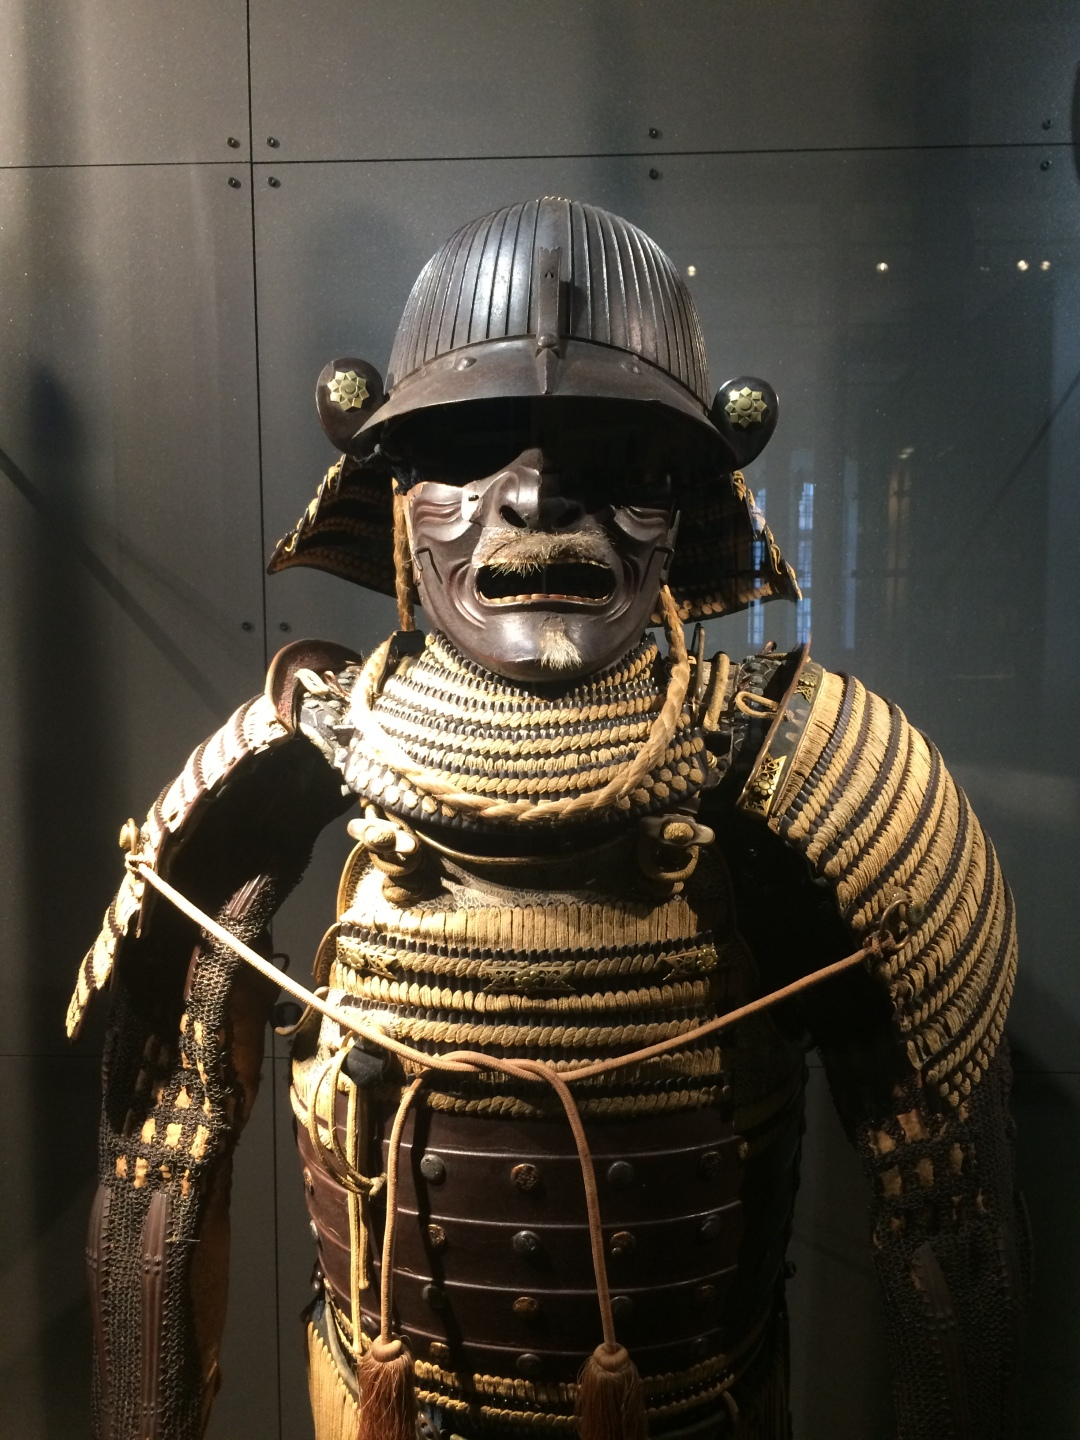 Descriptive image. Japanese armour.